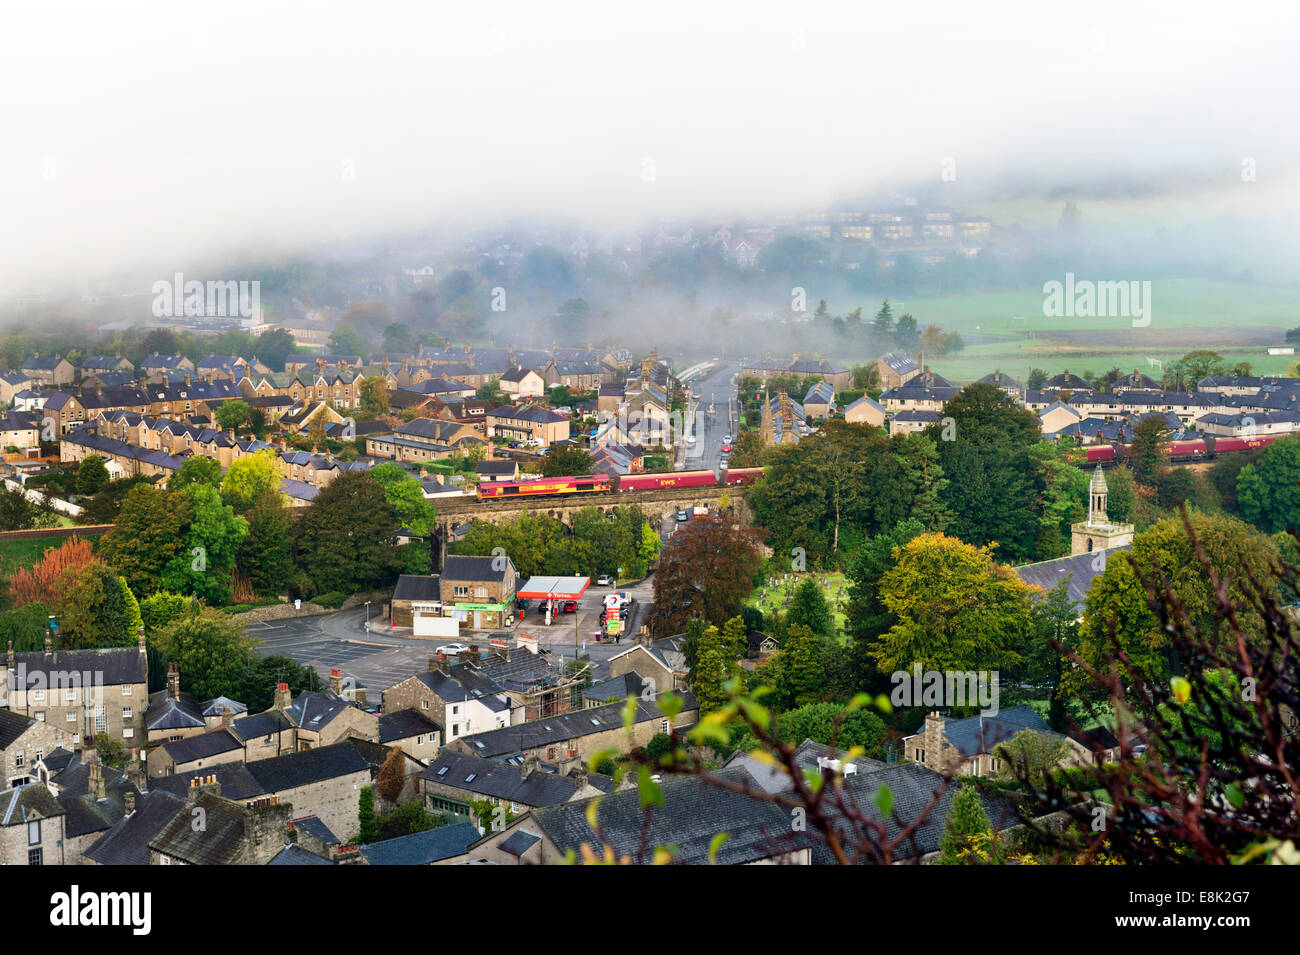 Misty Autumn morning, with low cloud, over Settle, North Yorkshire, UK, with freight train crossing bridge. - Stock Image